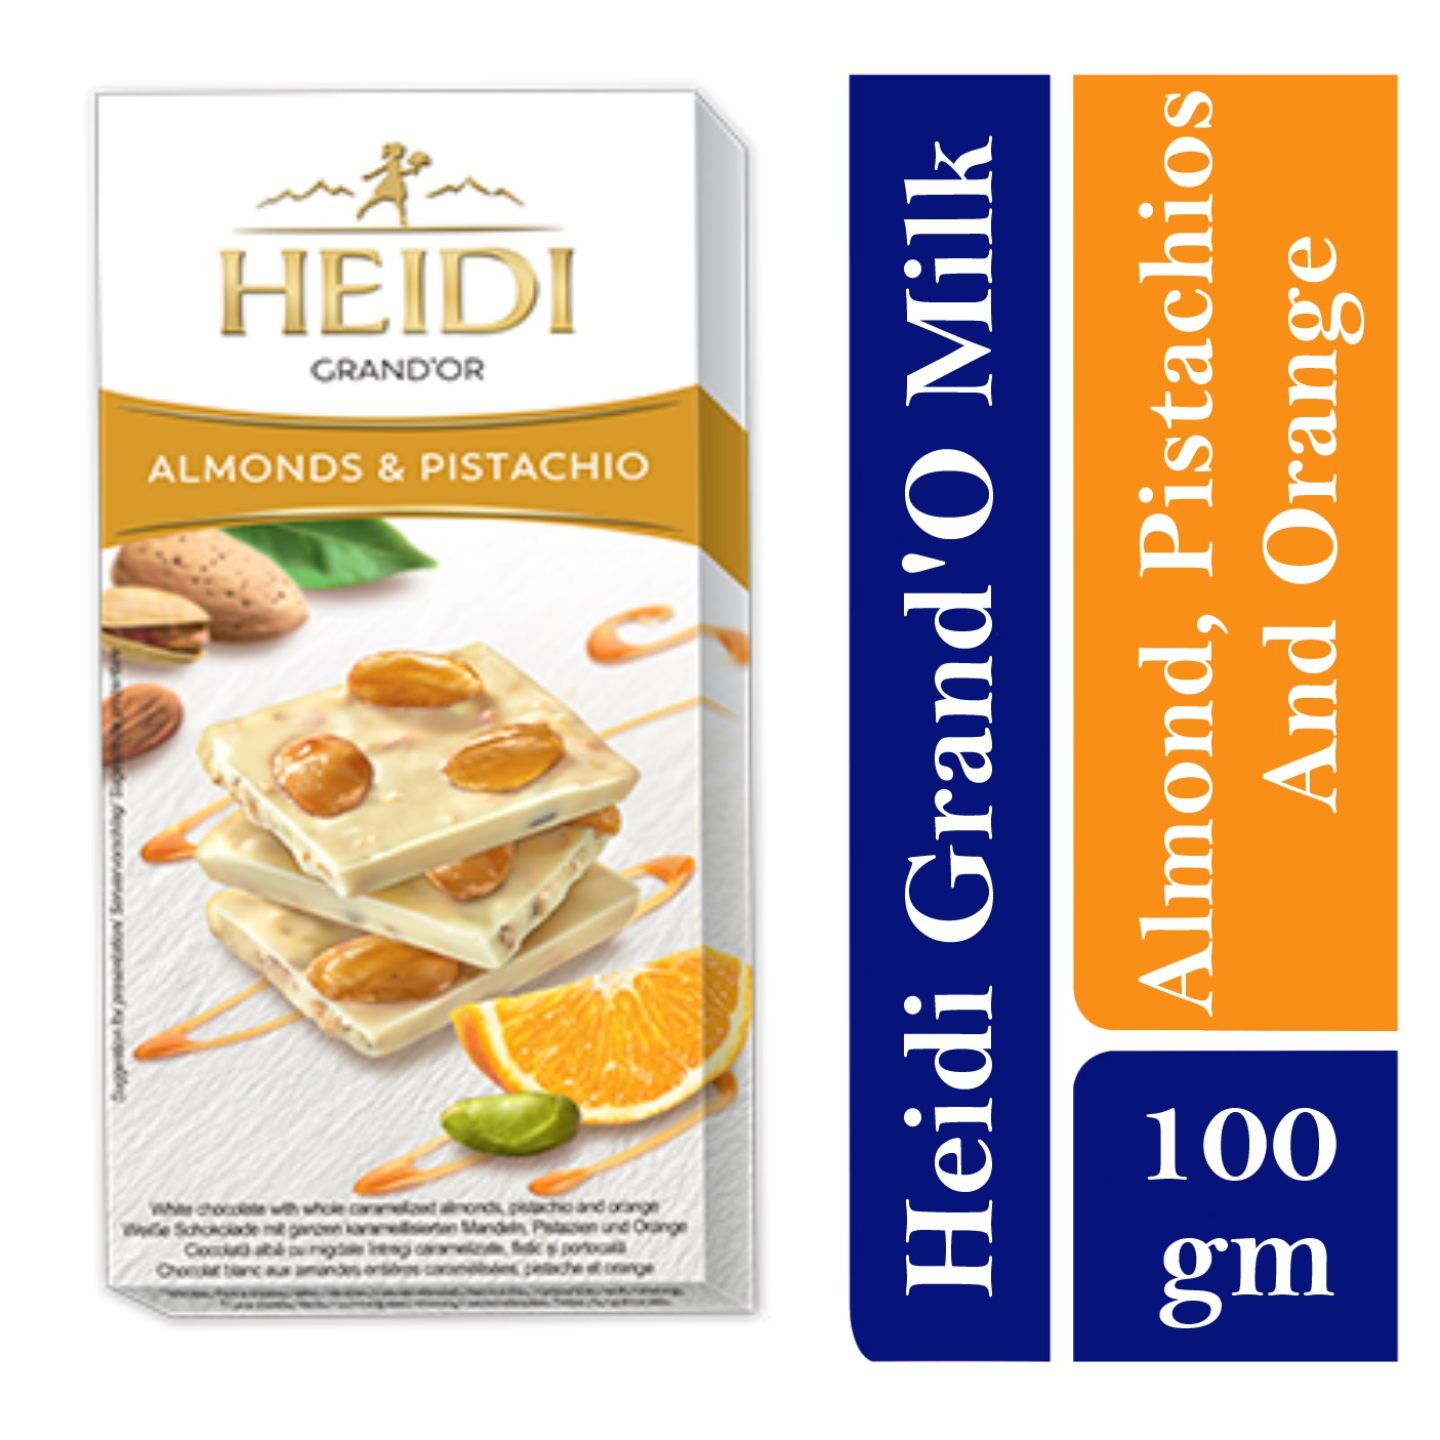 Heidi GrandOr white Chocolate with whole caramelized Almonds, Pistachios and Orange